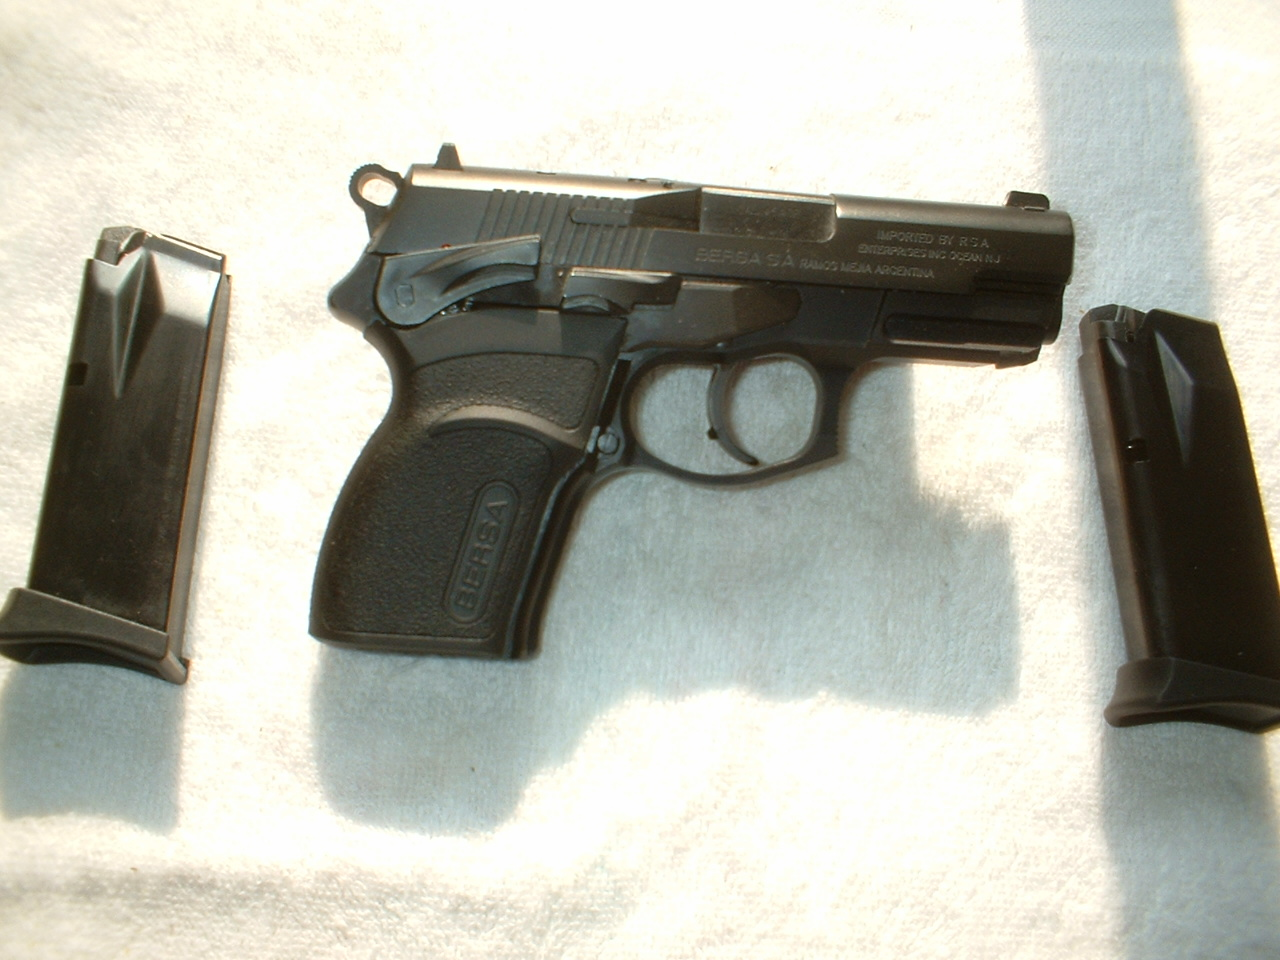 45acp conceal carry pistol